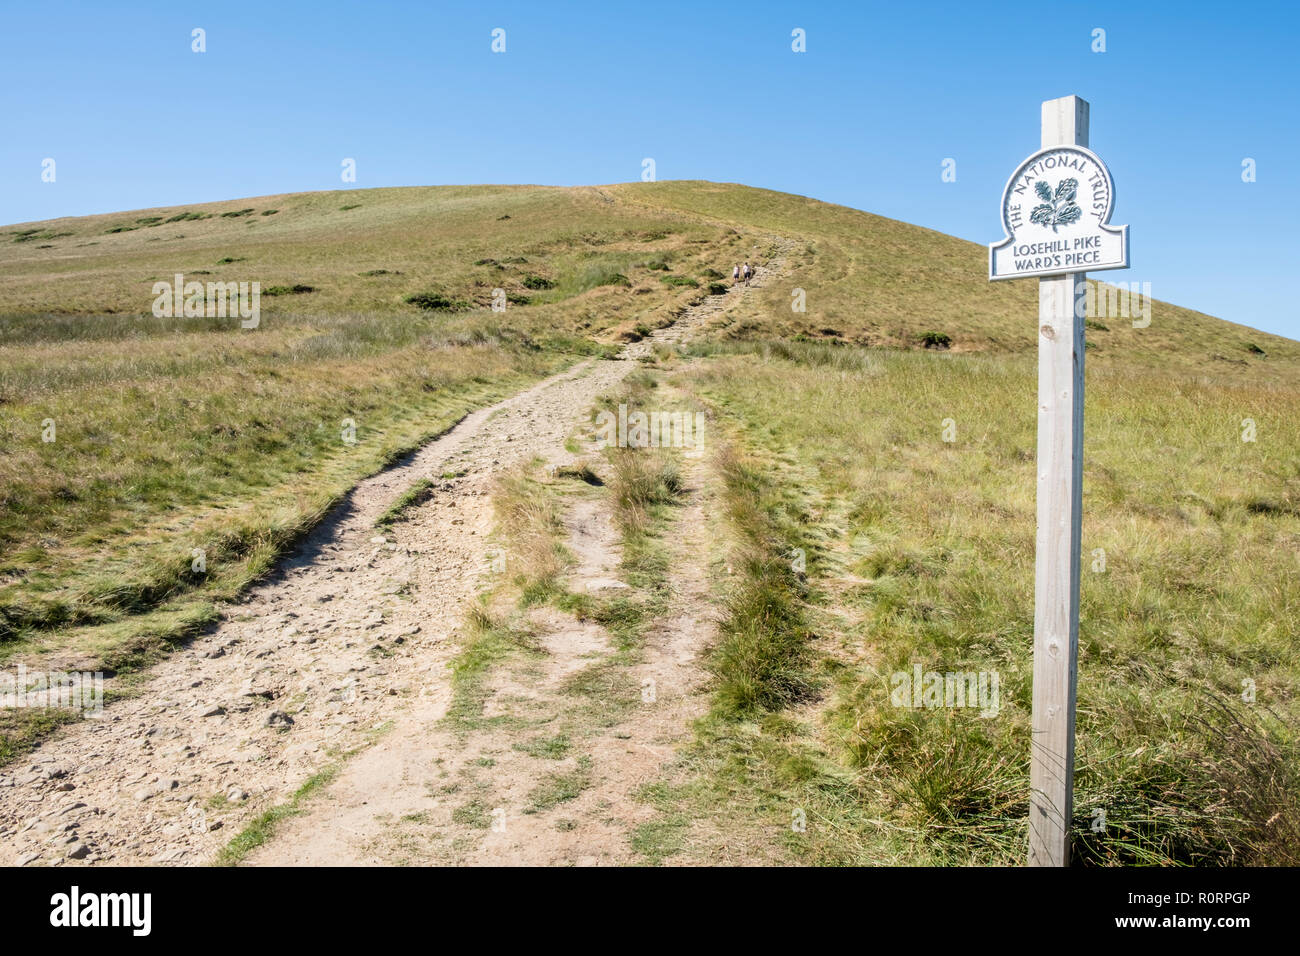 Lose Hill, also known as Losehill Pike or Ward's Piece at the end of the Great Ridge, Derbyshire, England, UK - Stock Image